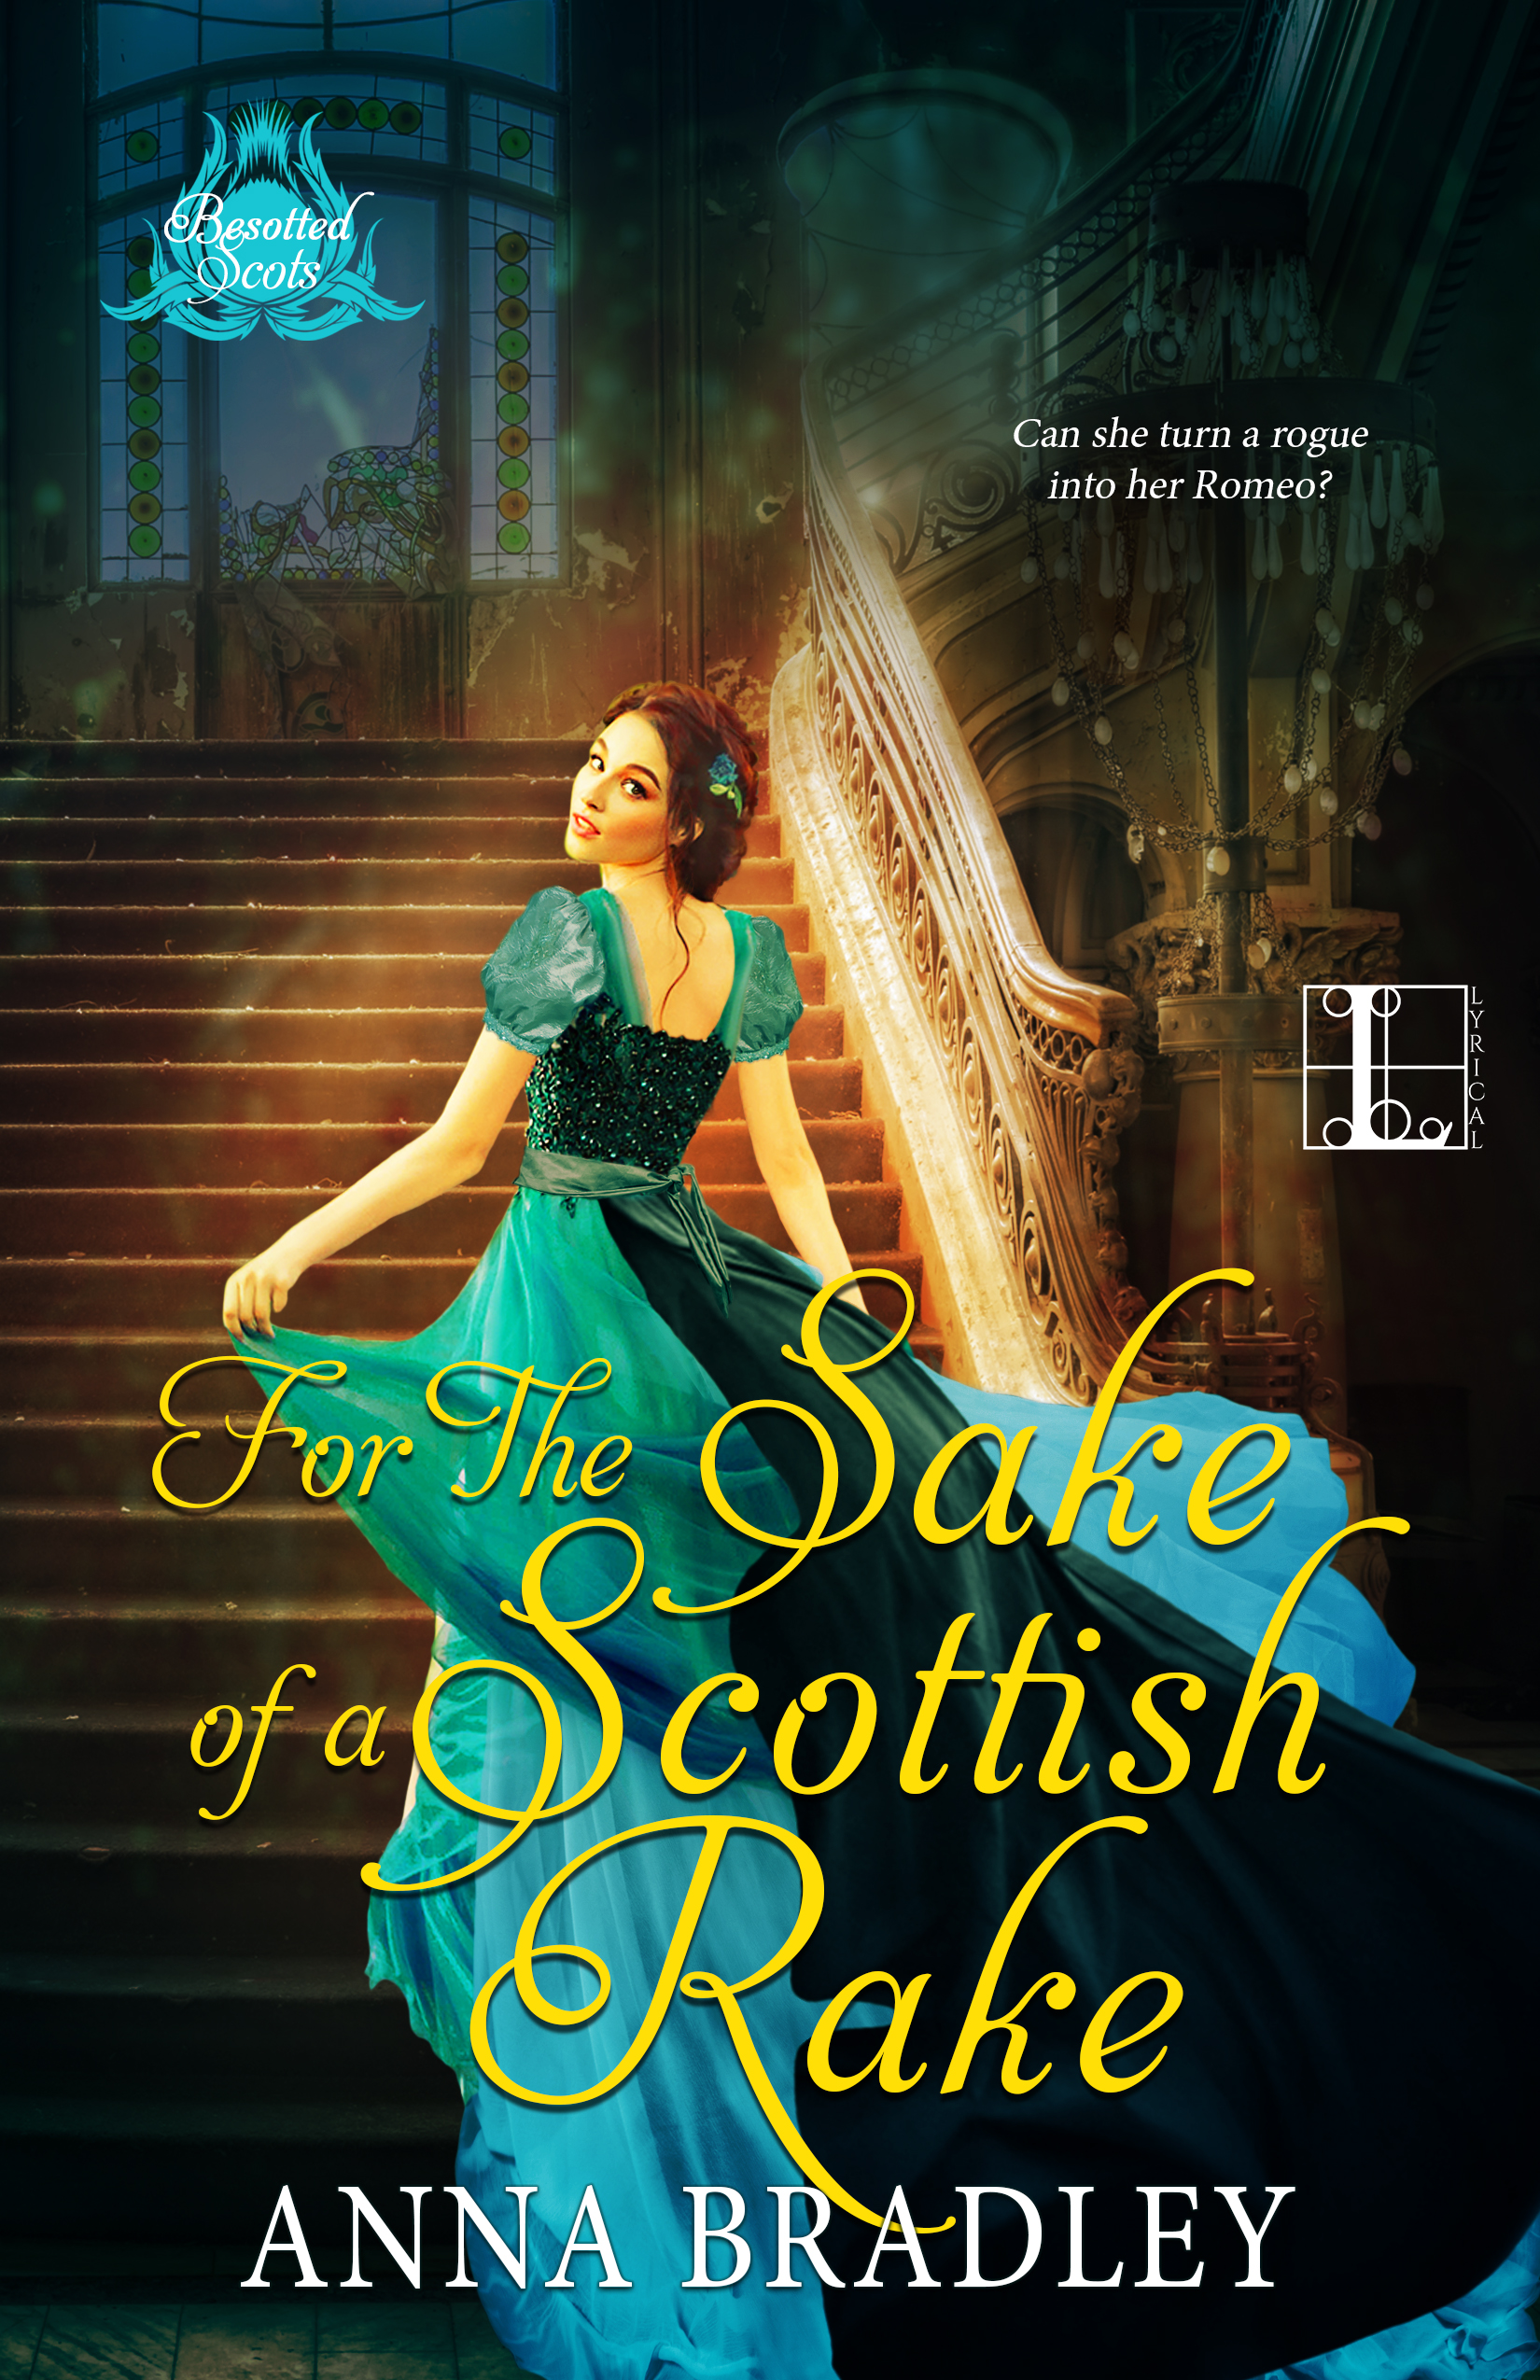 For the Sake of a Scottish Rake - Anna Bradley